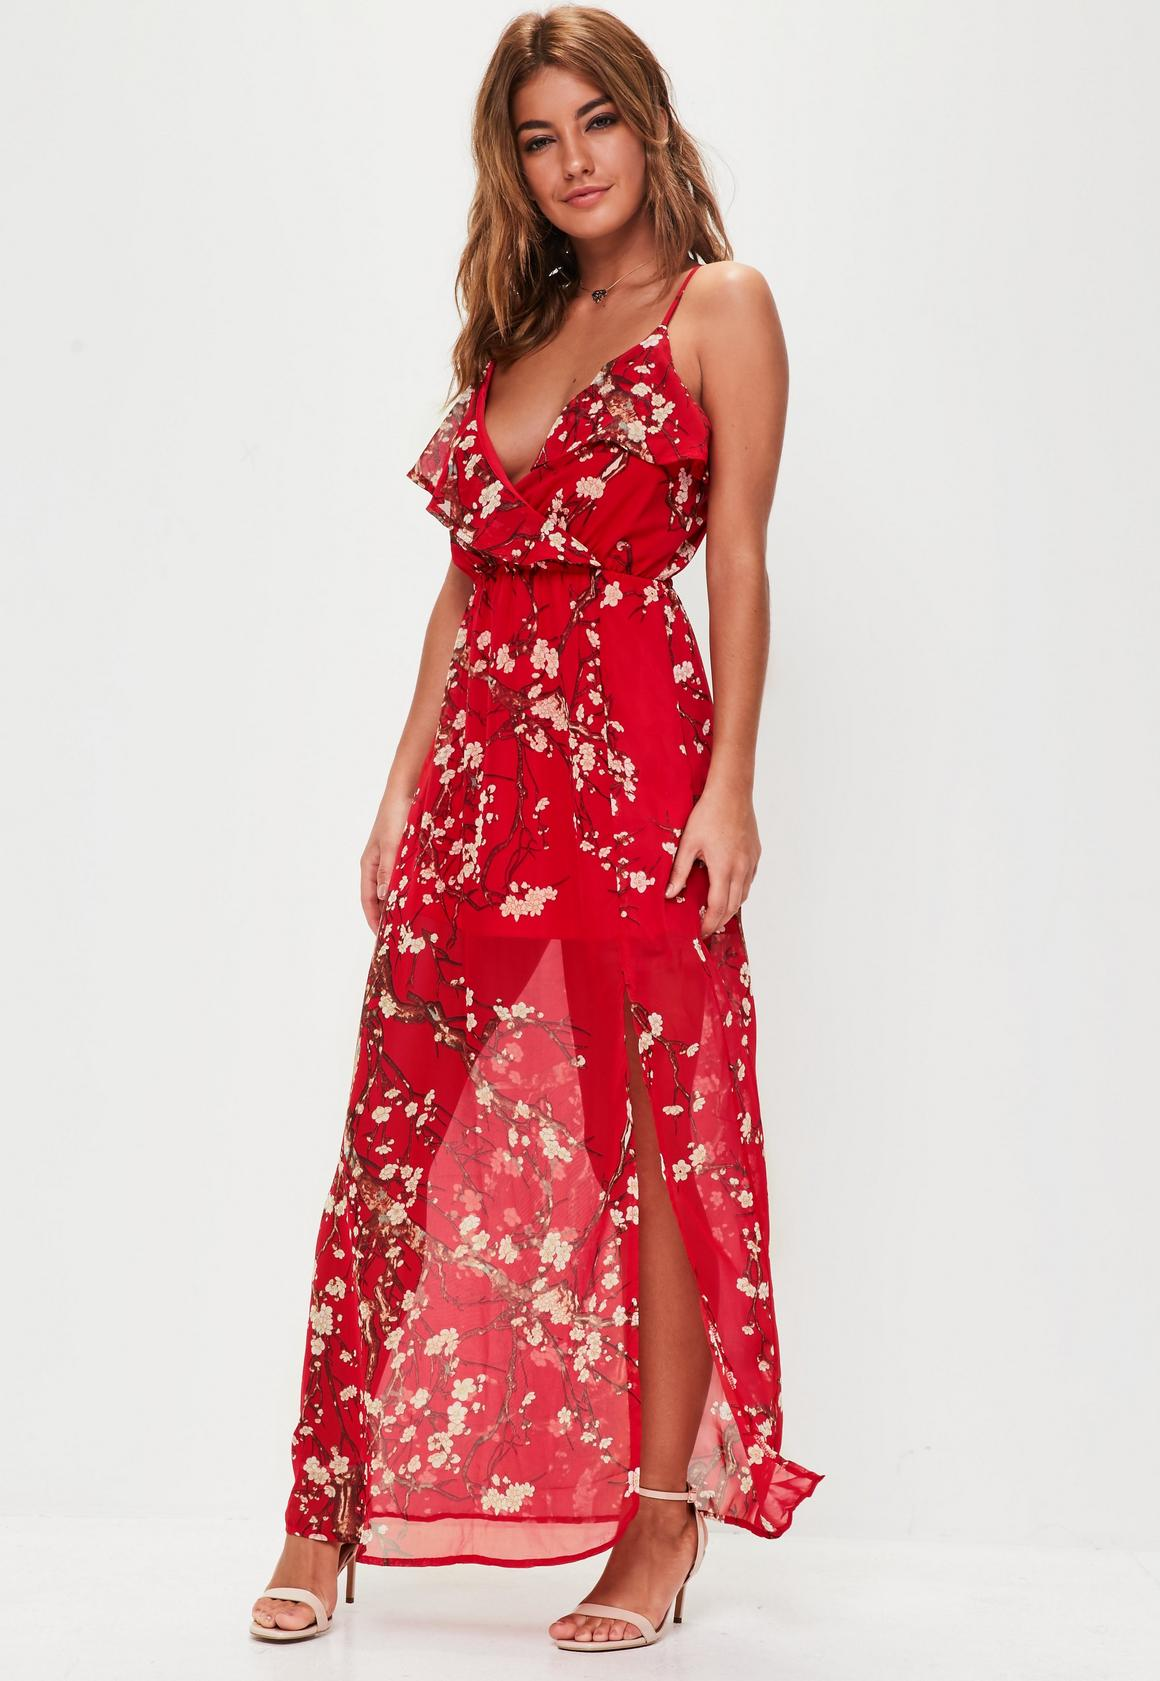 Red Floral Print Strappy Frill Dress | Missguided